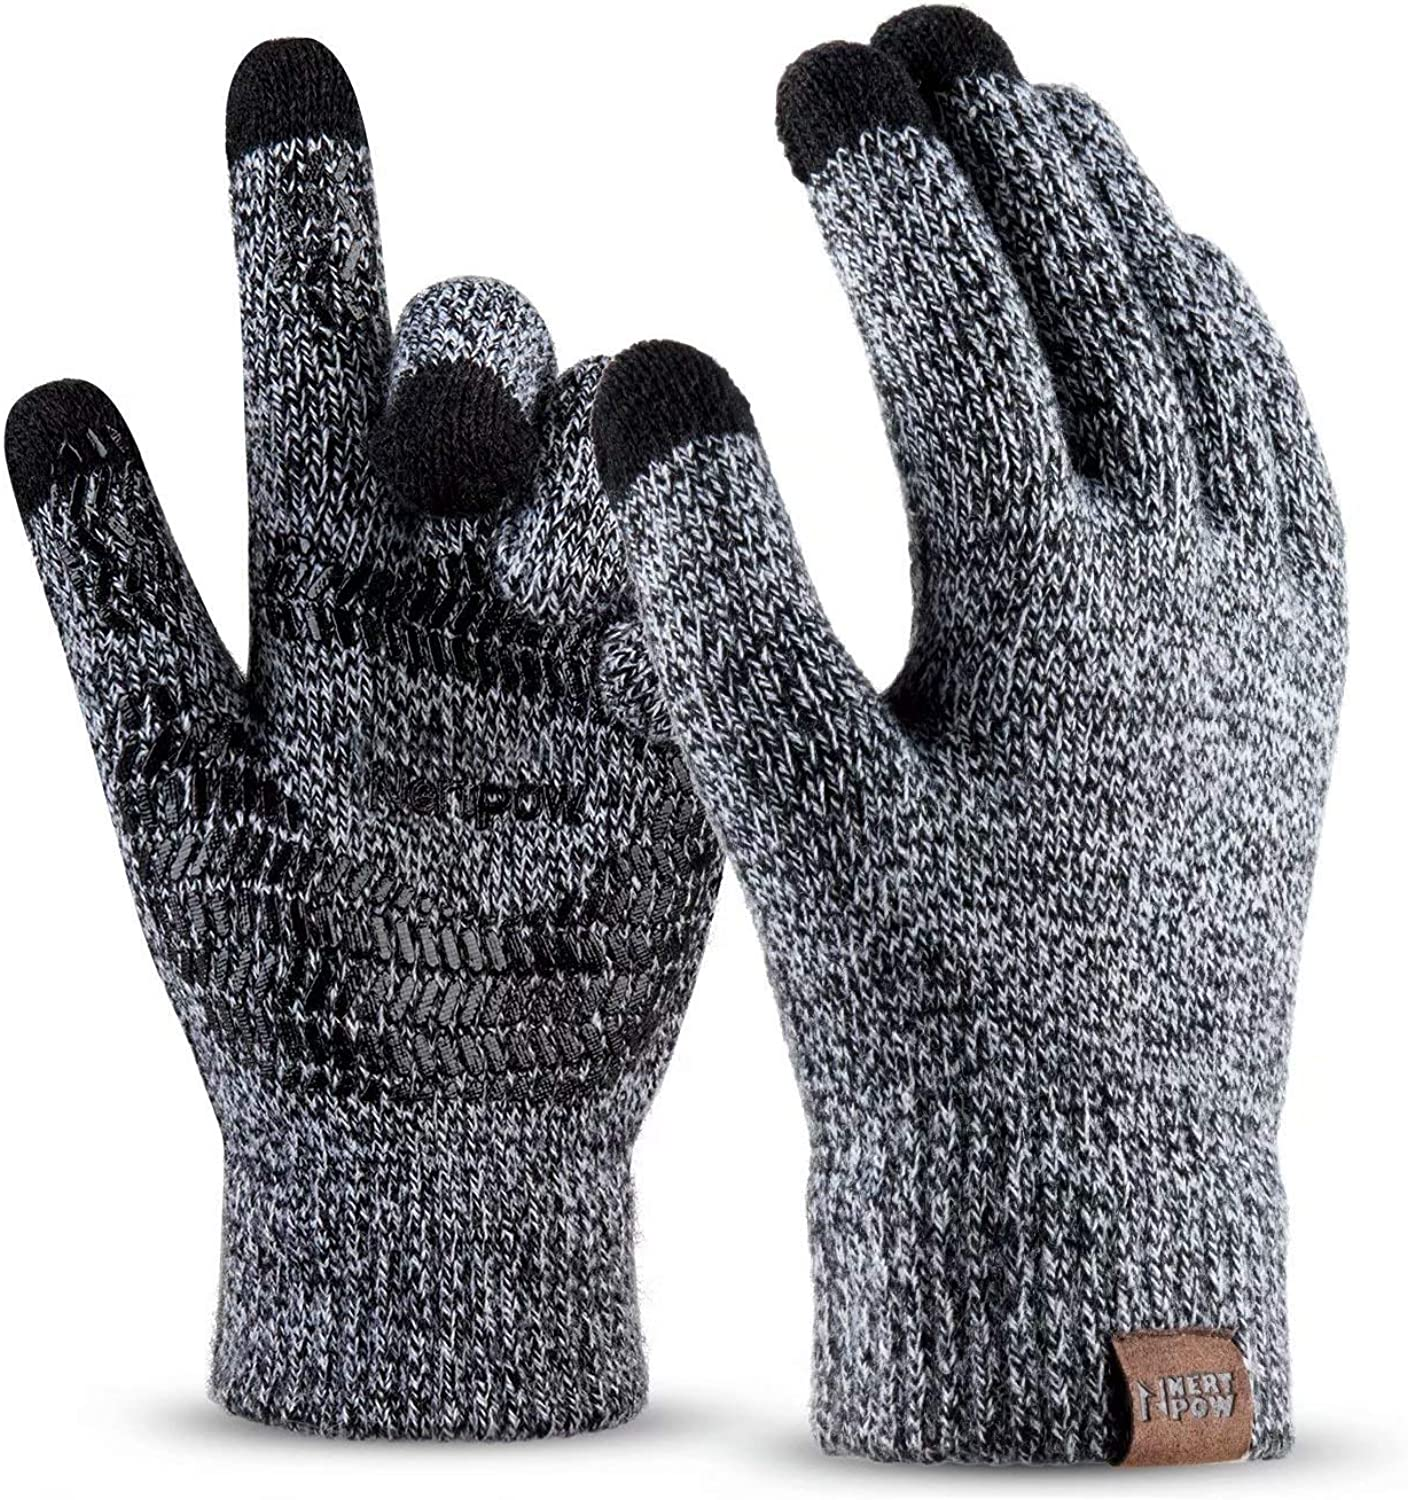 Winter Knit Gloves For Men And Women, Touch Screen Texting Soft Warm Thermal Fleece Lining Gloves With Anti-Slip Silicone Gel (Black&White-L)